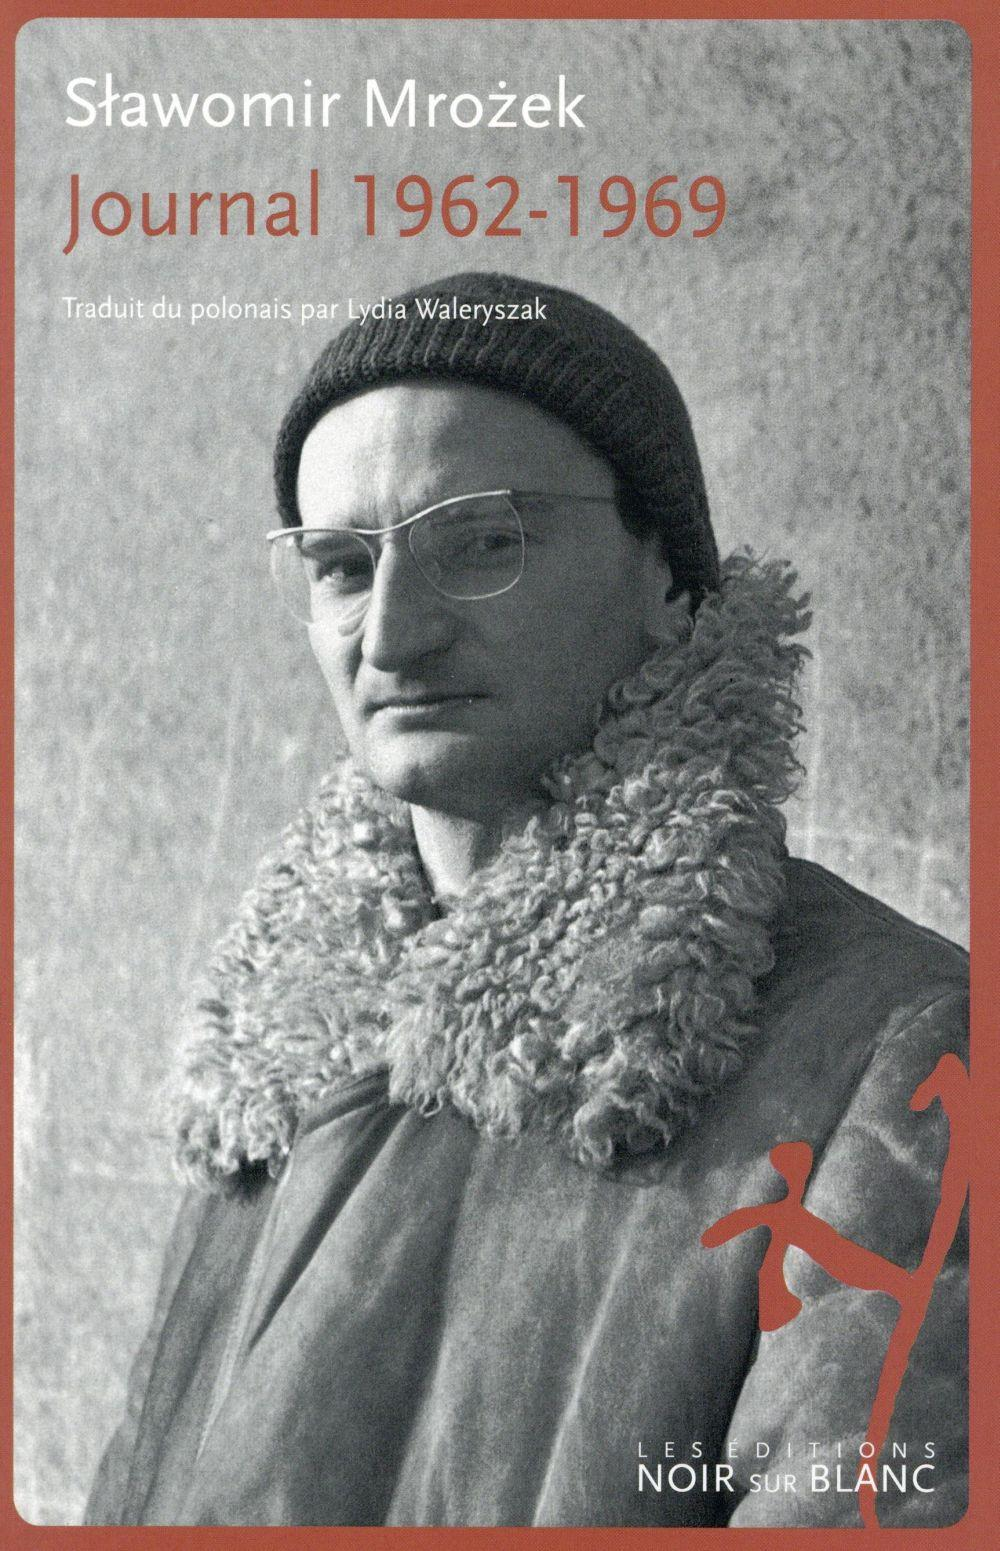 Journal 1962-1969  - Slawomir Mrozek